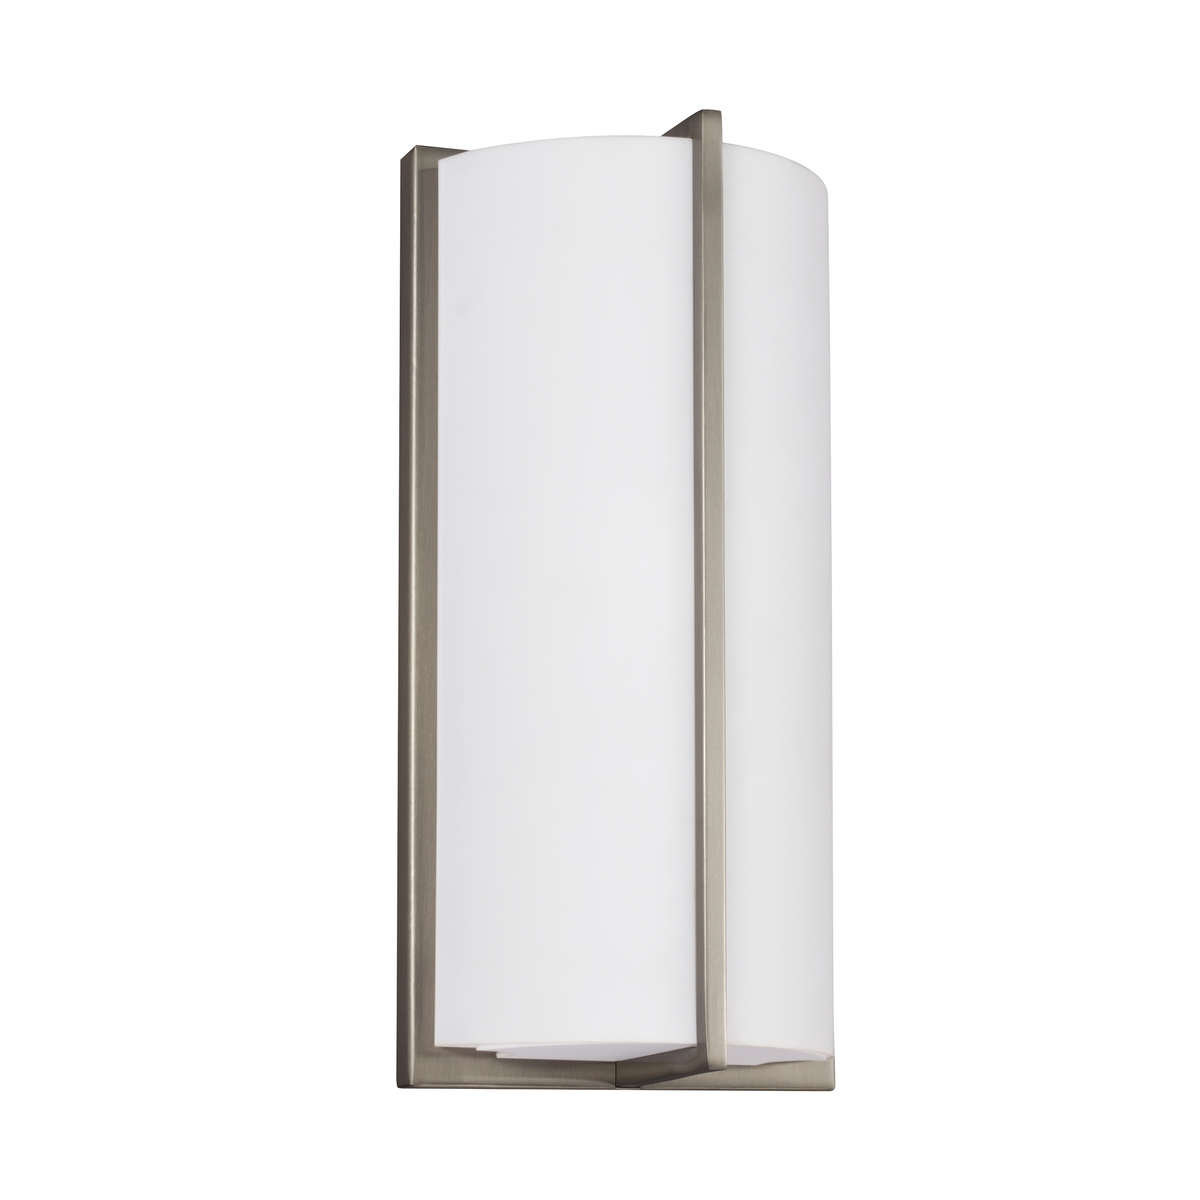 Sea gull 4934091s 962 ada 6 inch brushed nickel bath sconce wall light aloadofball Images